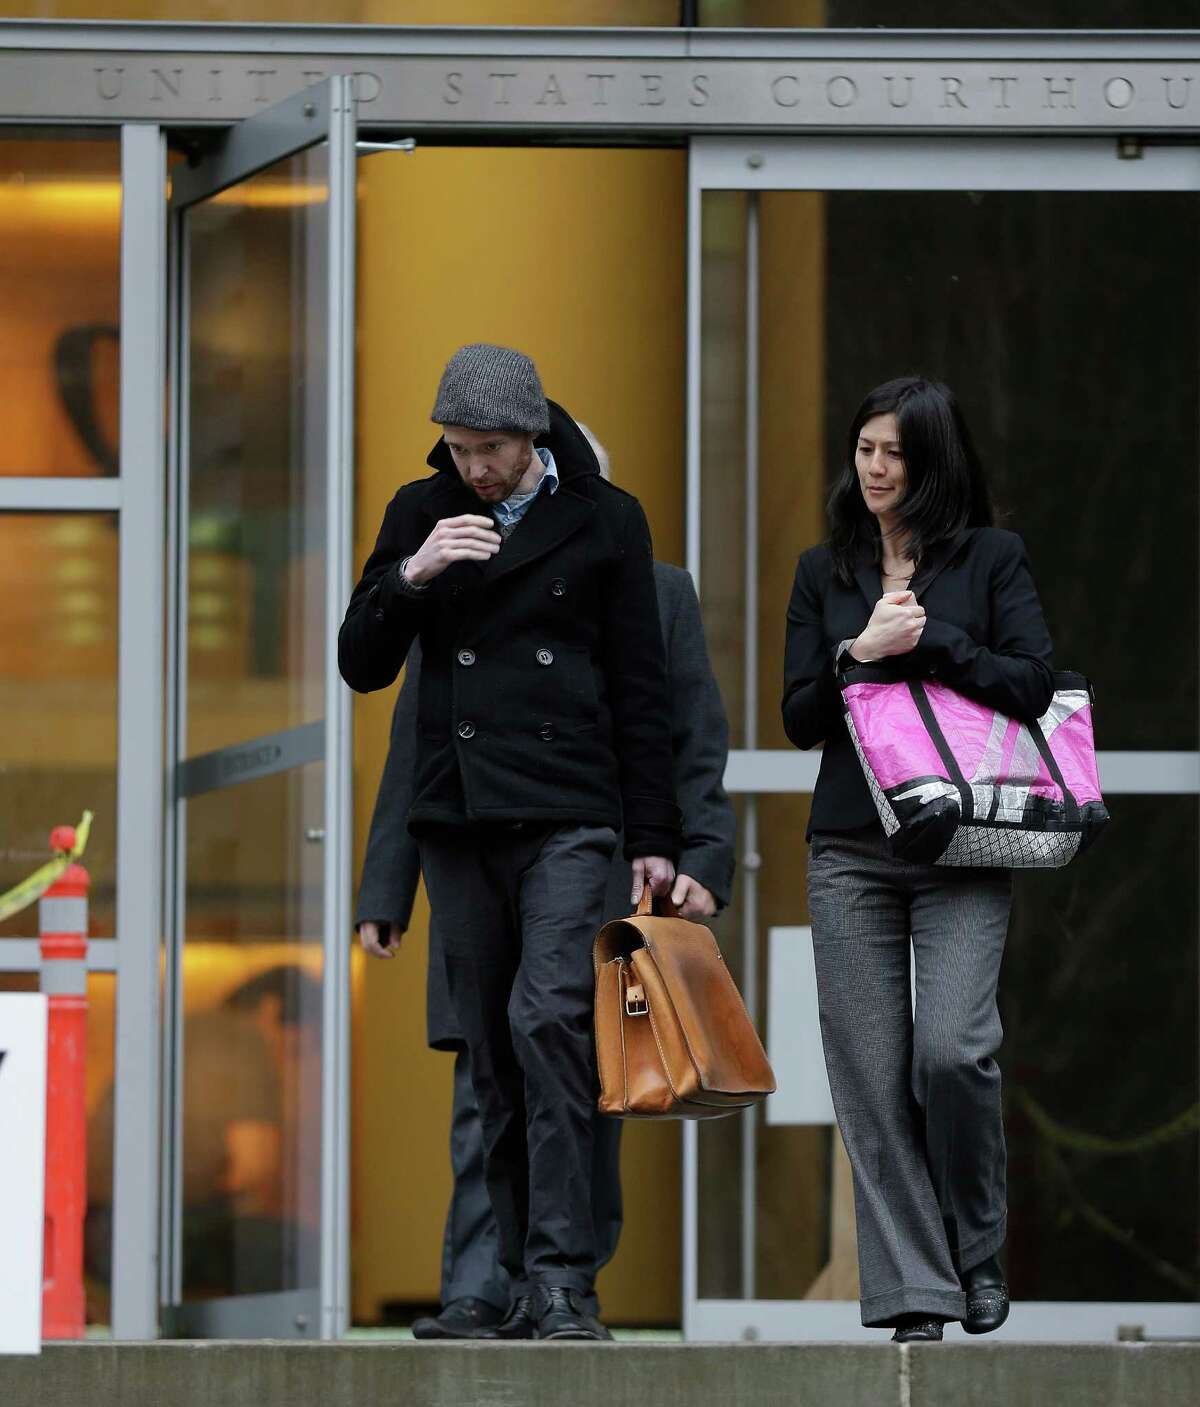 Musician Kasey Anderson, left, walks with his attorney, Corey Endo, Tuesday, Jan. 29, 2013, after Anderson made an initial appearance in U.S. District Court in Seattle. Anderson was arrested on charges he raised more than $525,000 for fictitious music projects - including one that purportedly involved Bruce Springsteen, Willie Nelson and Jack White.